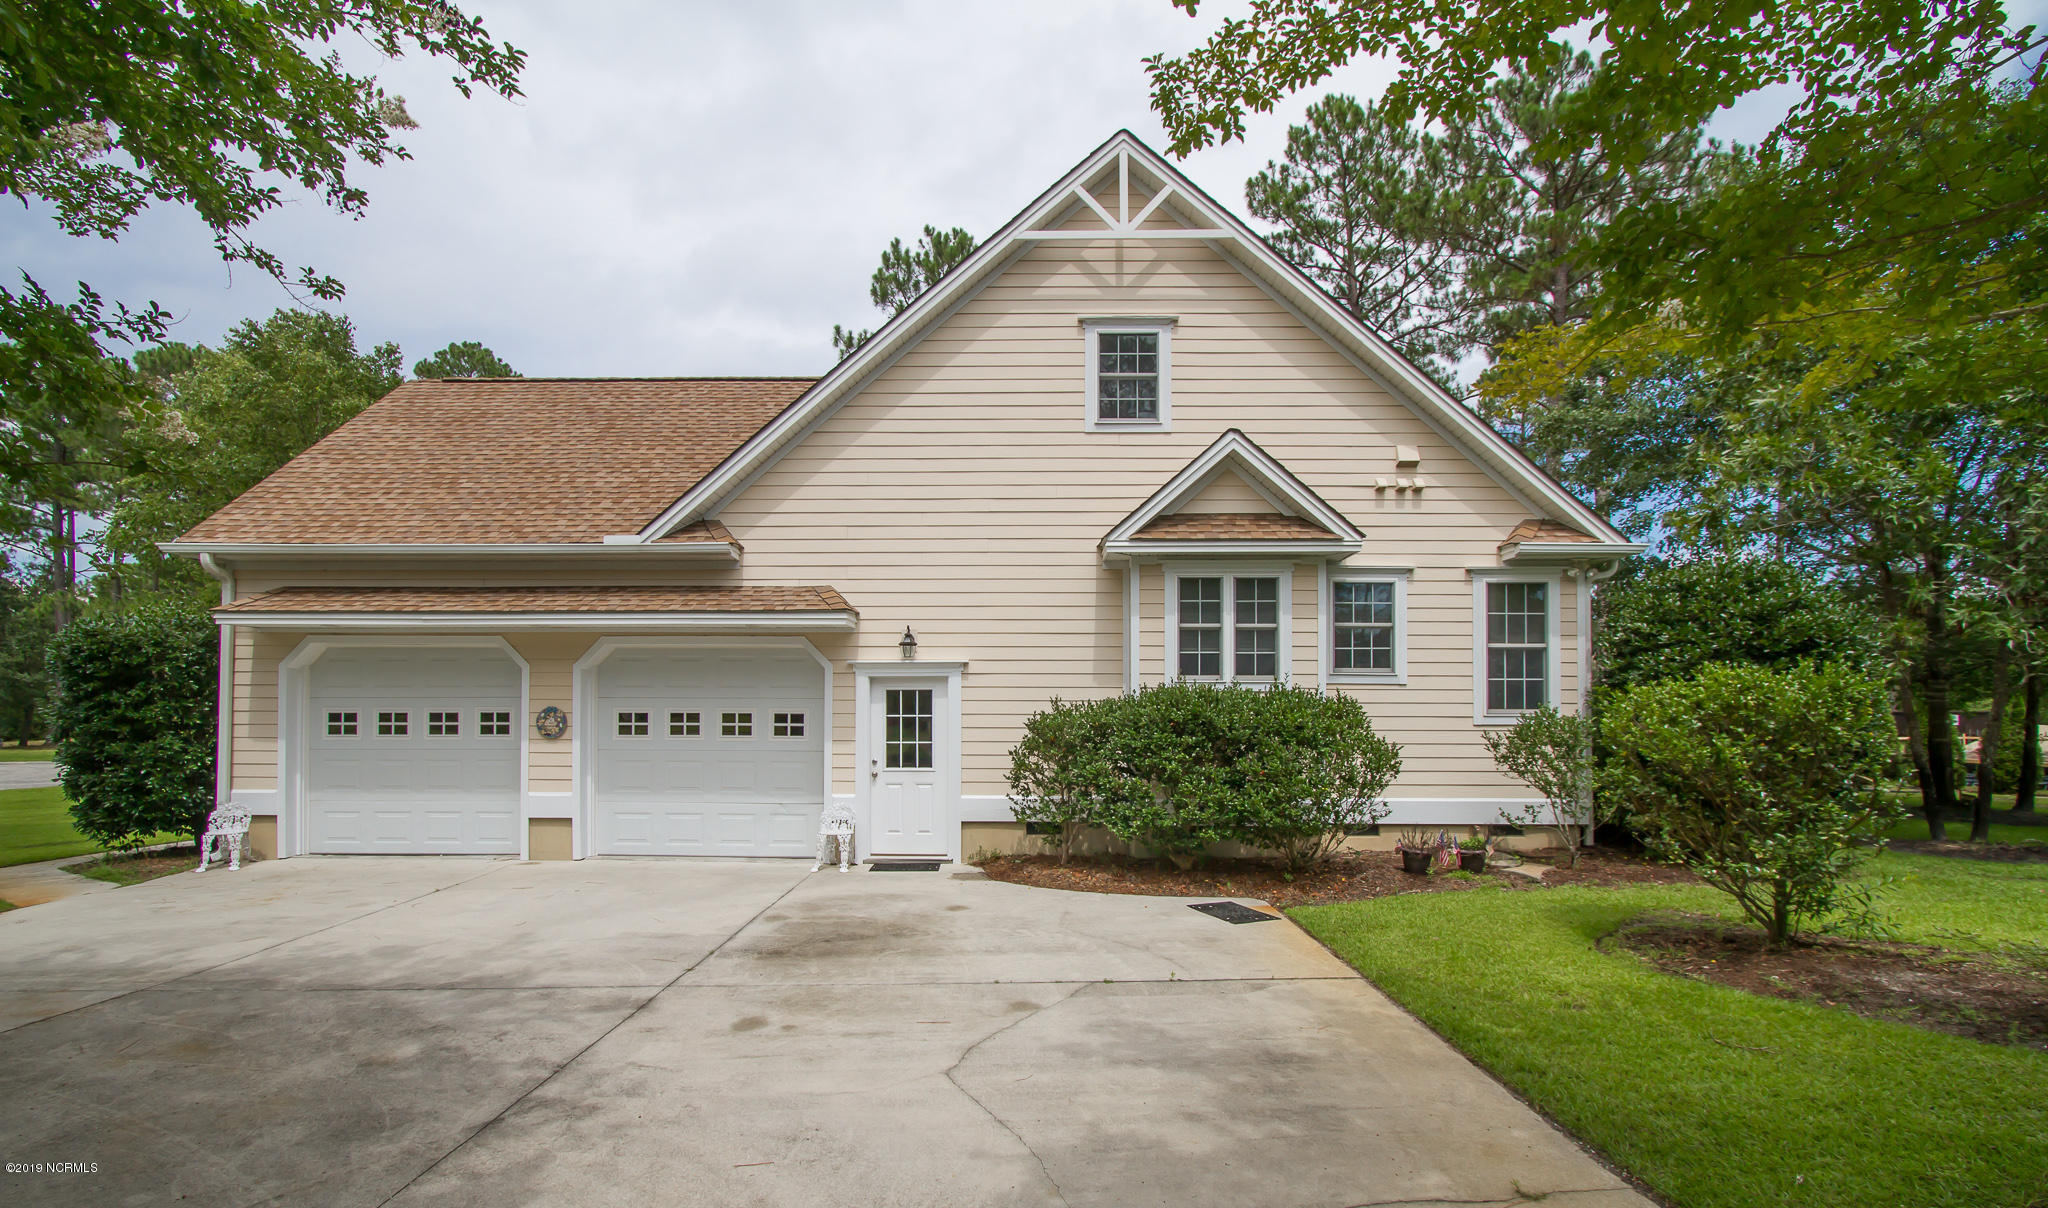 503 White Tail Court Bolivia, NC 28422